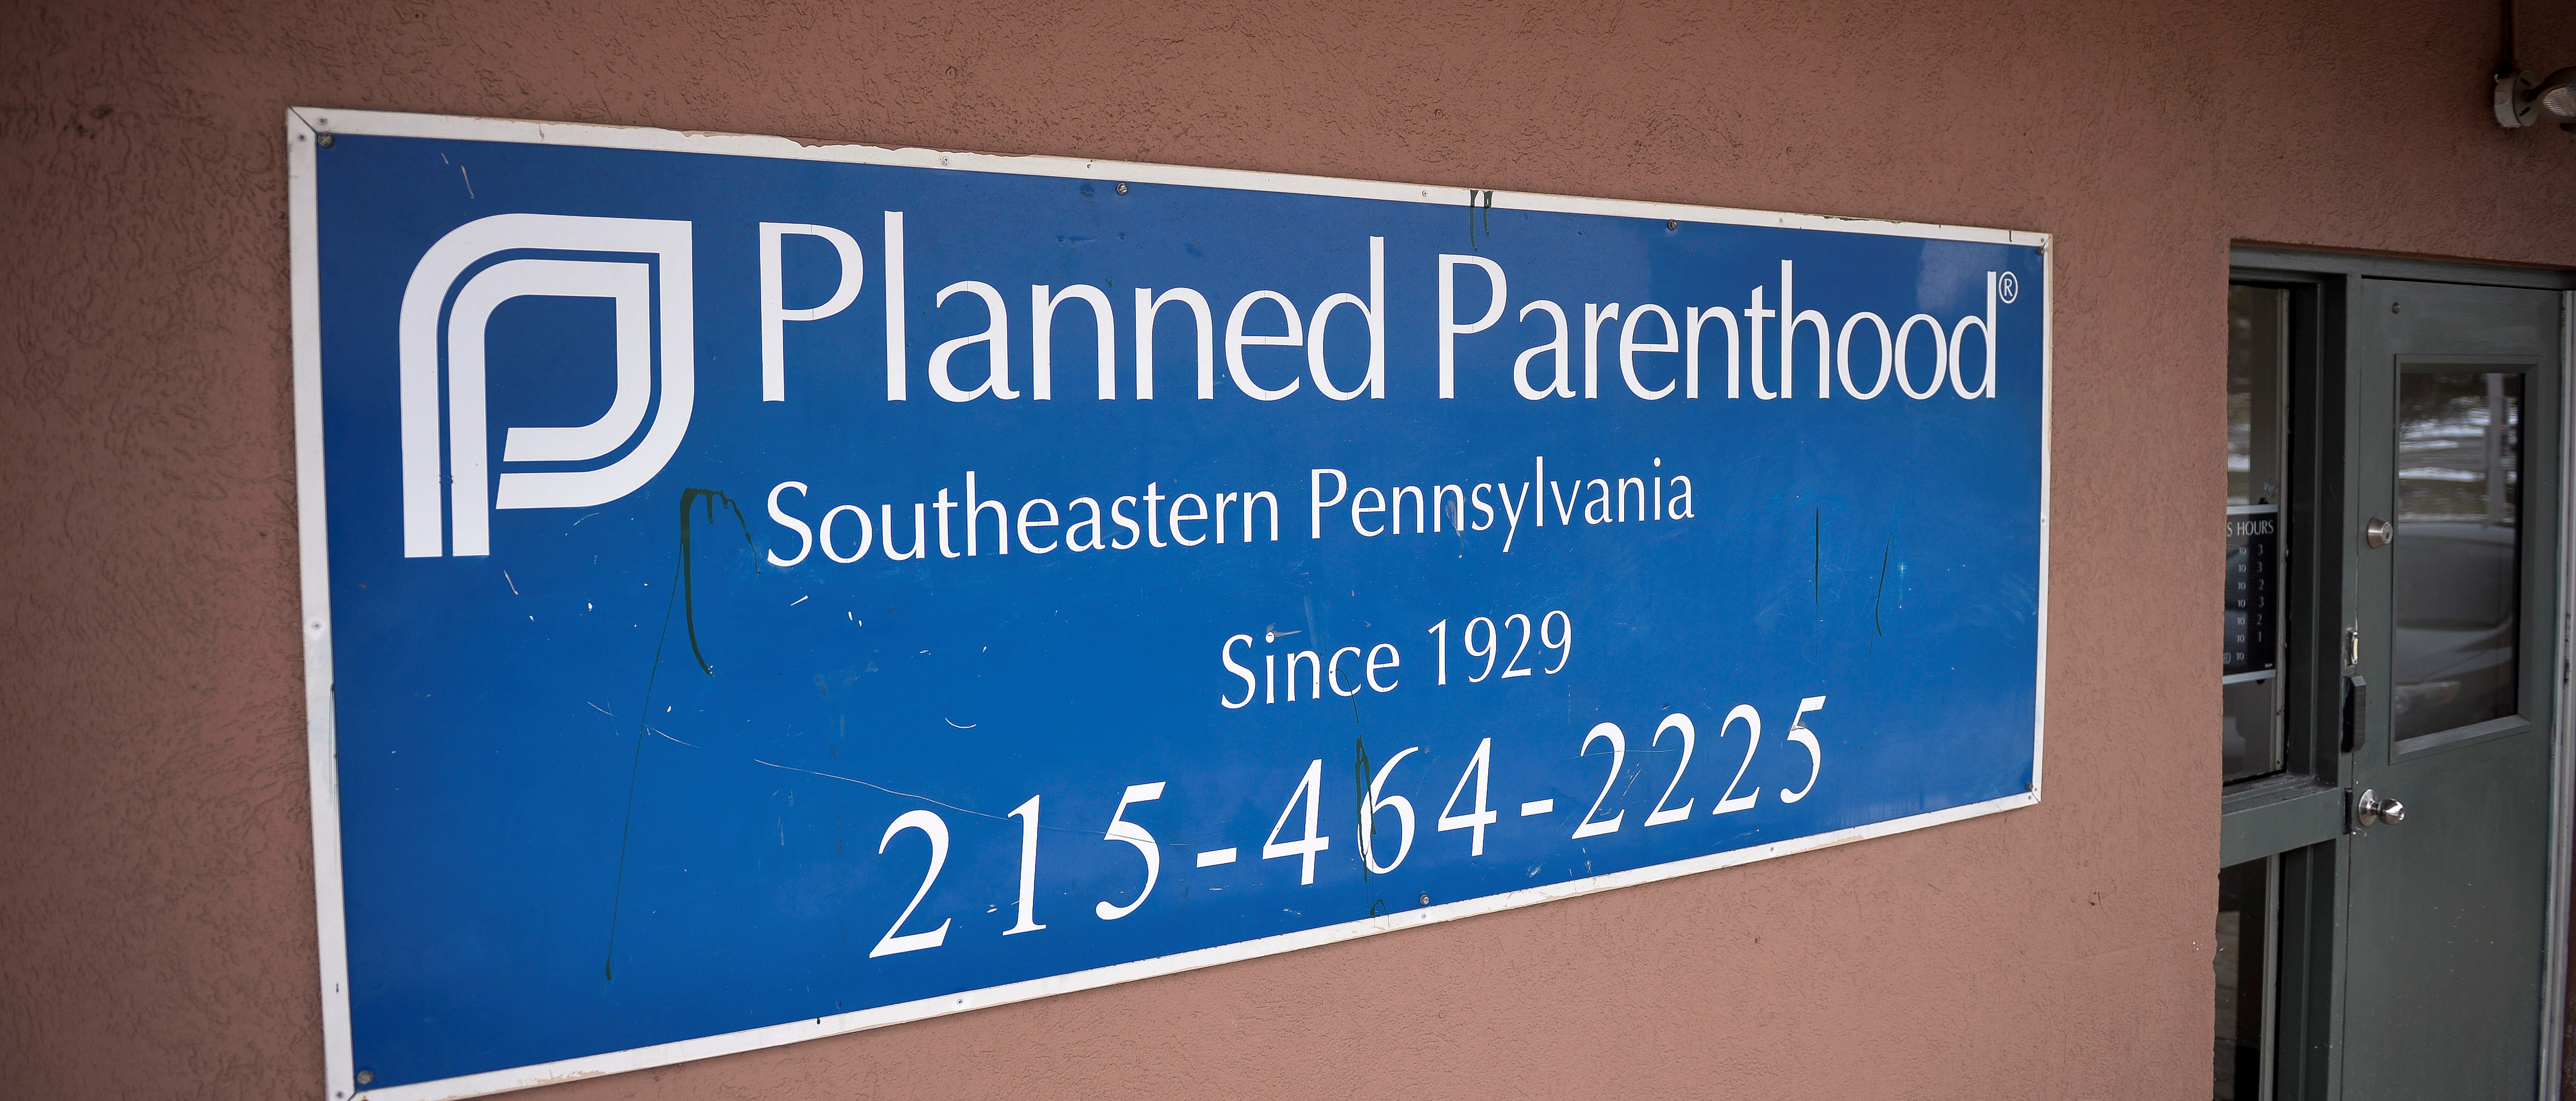 The sign of the Planned Parenthood centre is pictured in Philadelphia, Pennsylvania, U.S., February 11, 2017. REUTERS/Charles Mostoller